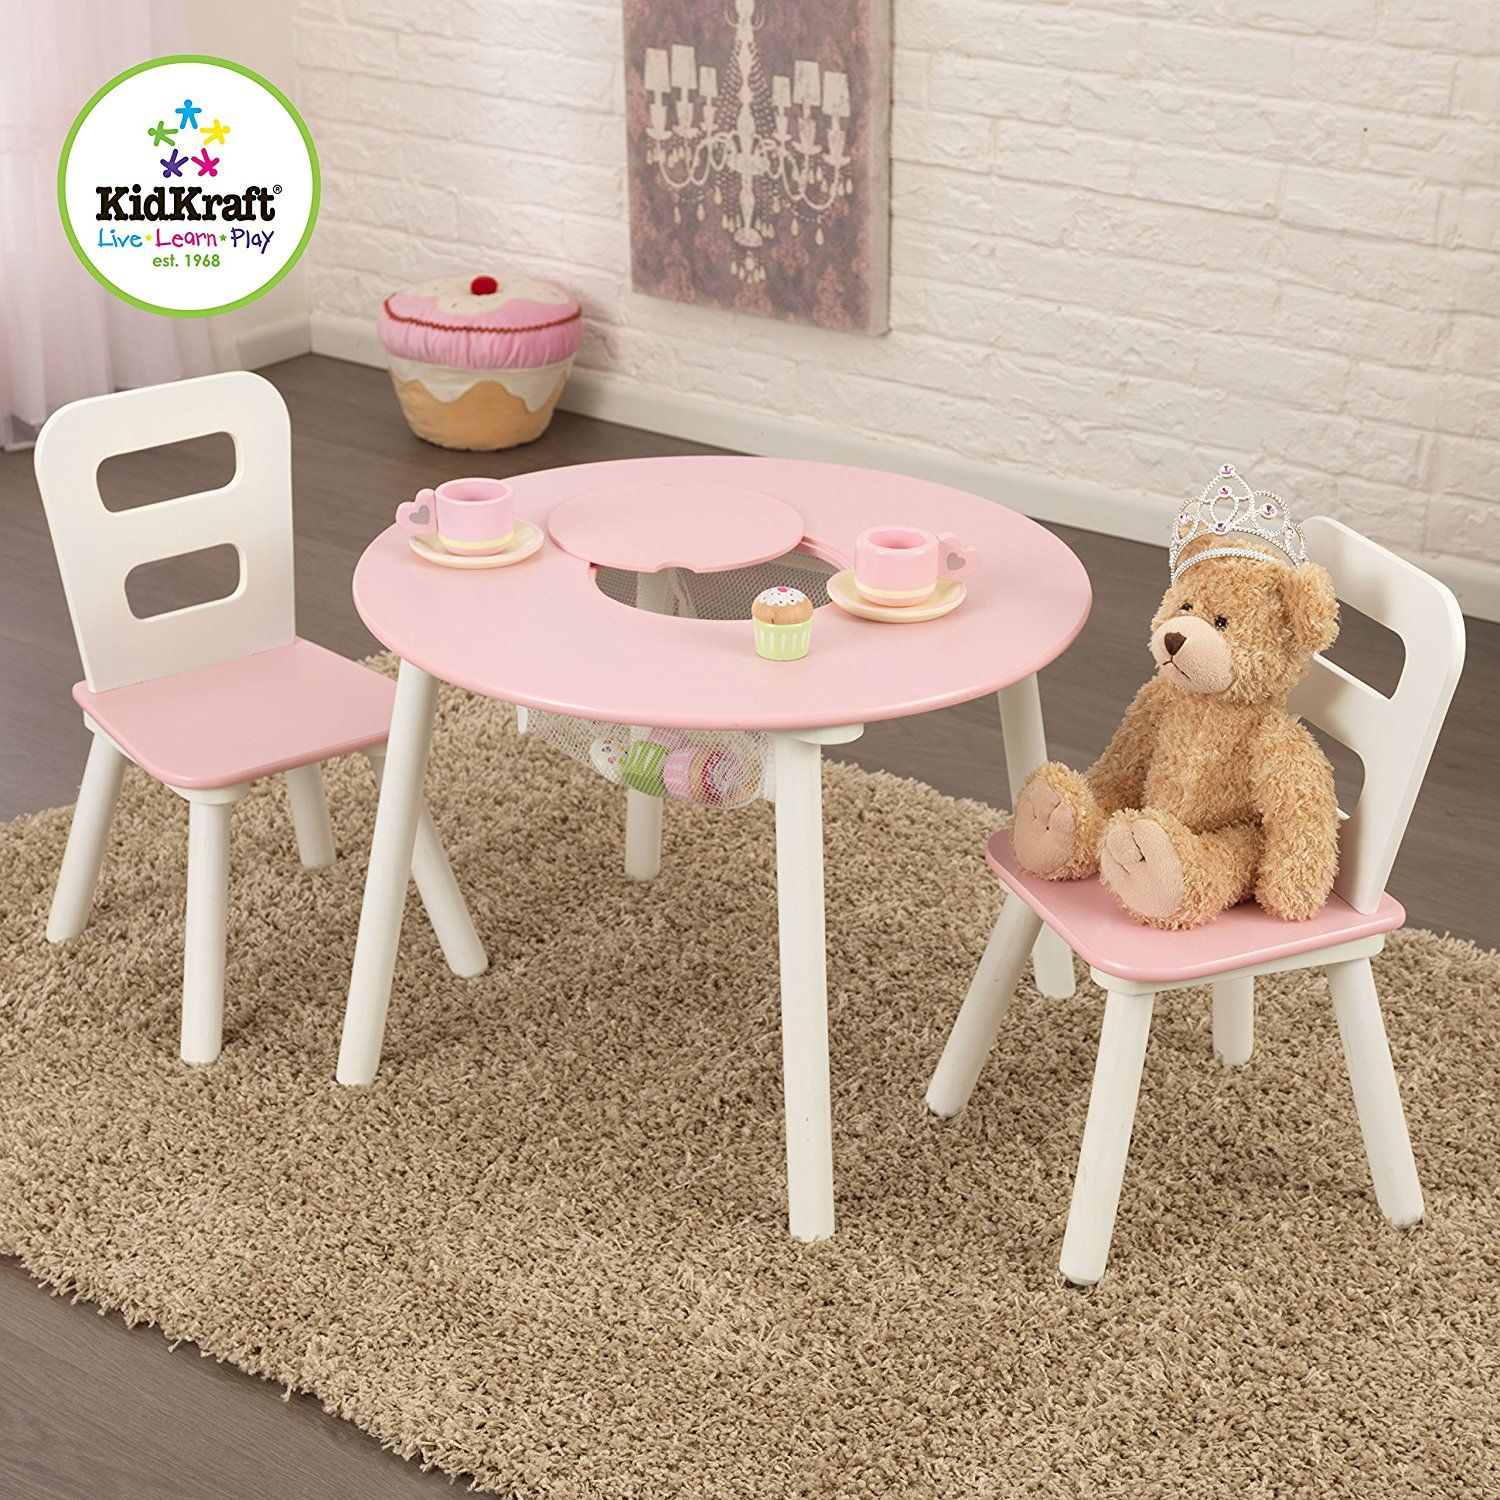 Awesome Amazon Com Kidkraft Round Table And 2 Chair Set White Pink Machost Co Dining Chair Design Ideas Machostcouk